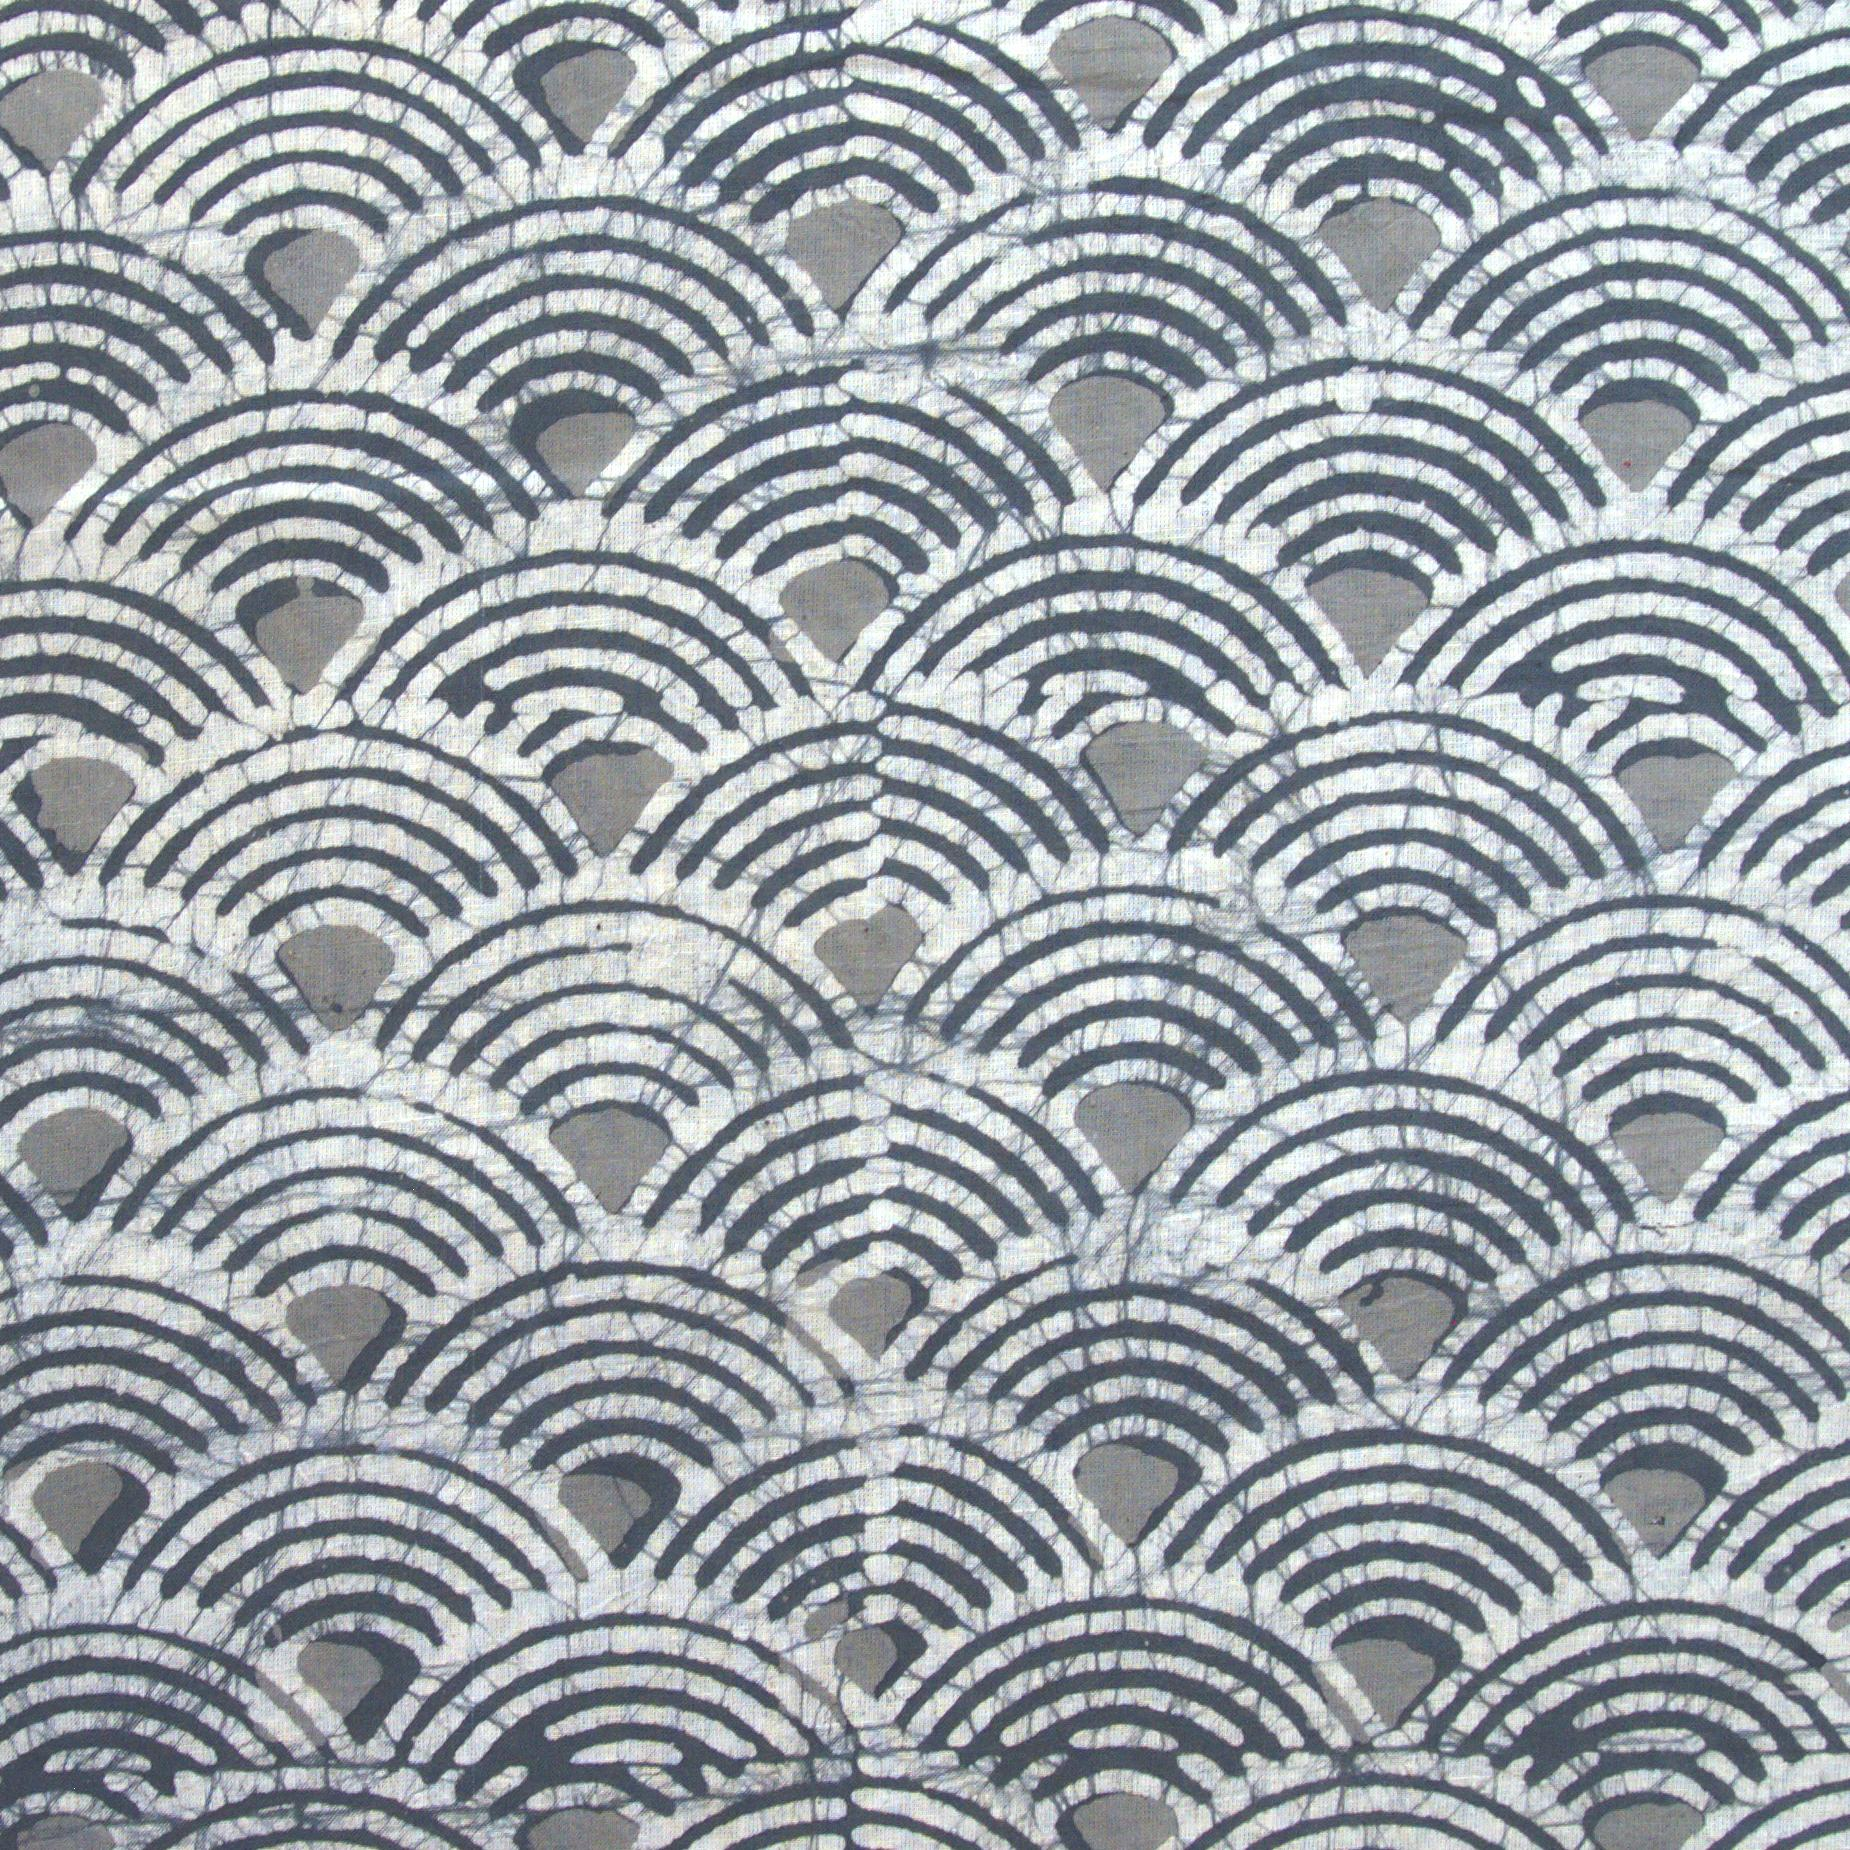 2 - SHA03 - 100% Block-Printed Batik Cotton Fabric From India - Batik - Grey Scales